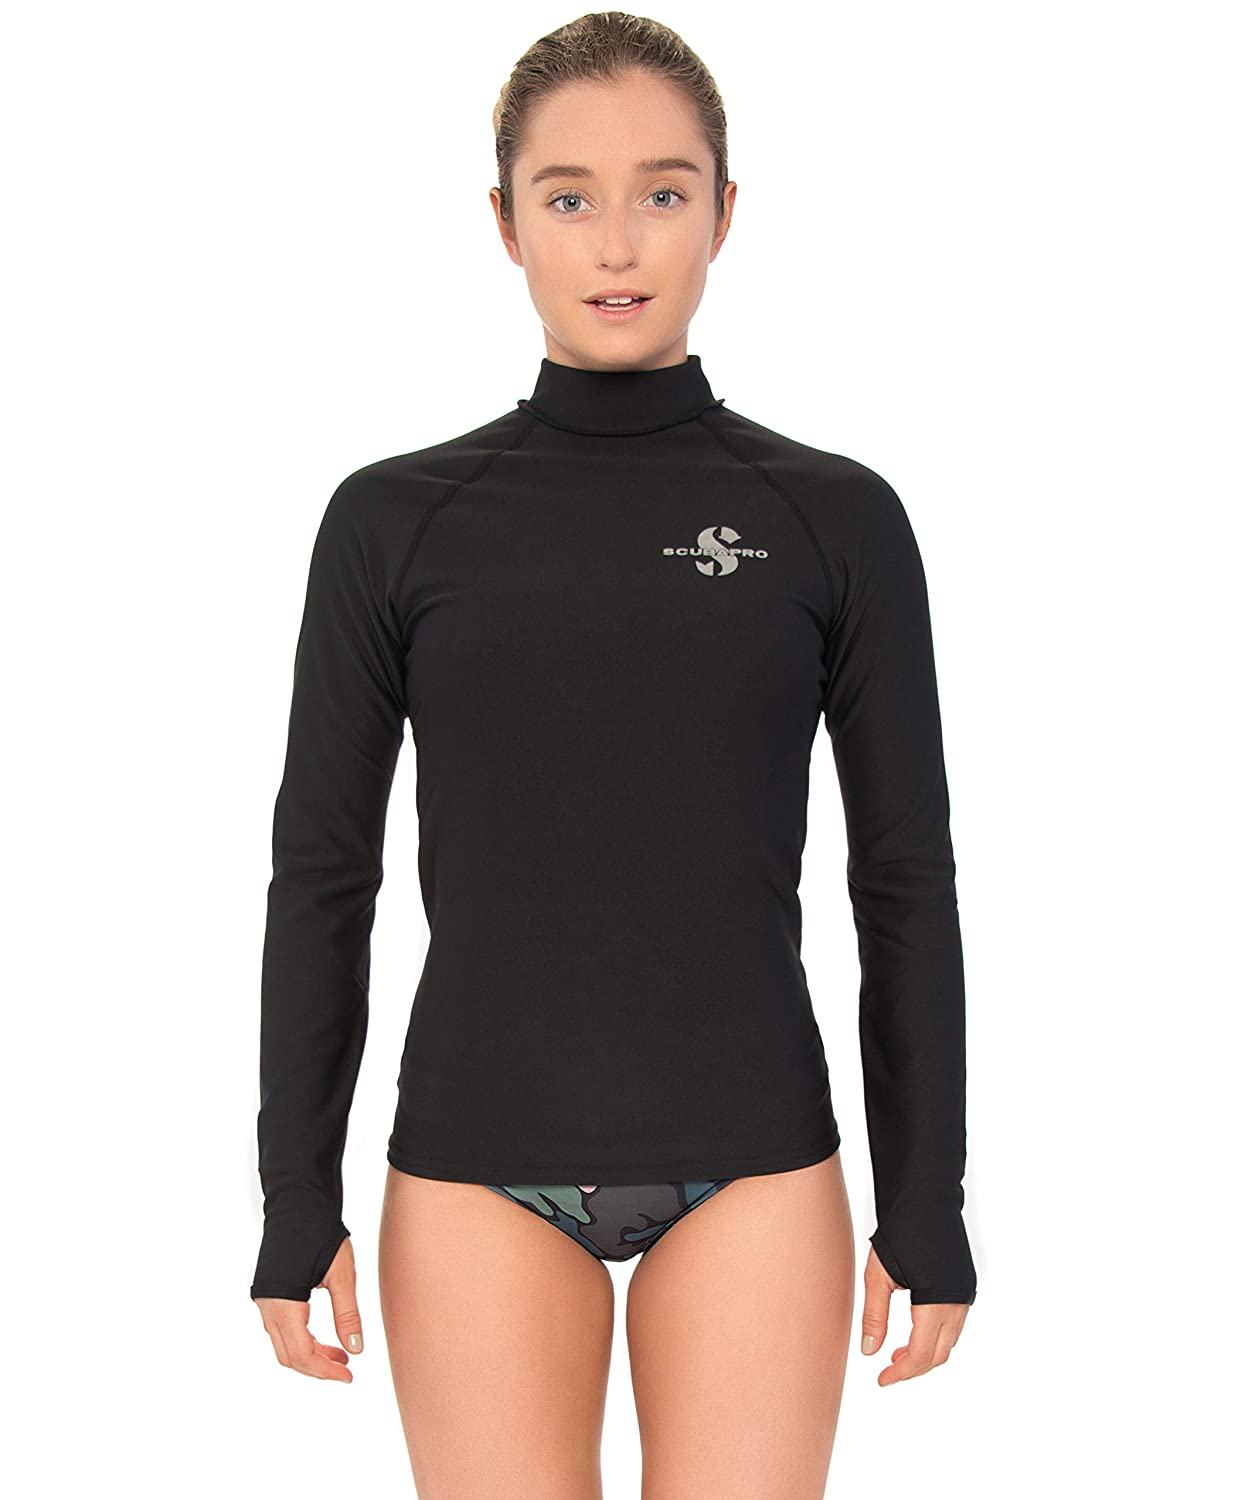 Scubapro Collection Womens UV Sun Protection Rash Guard Lycra Skin Choose Your Style